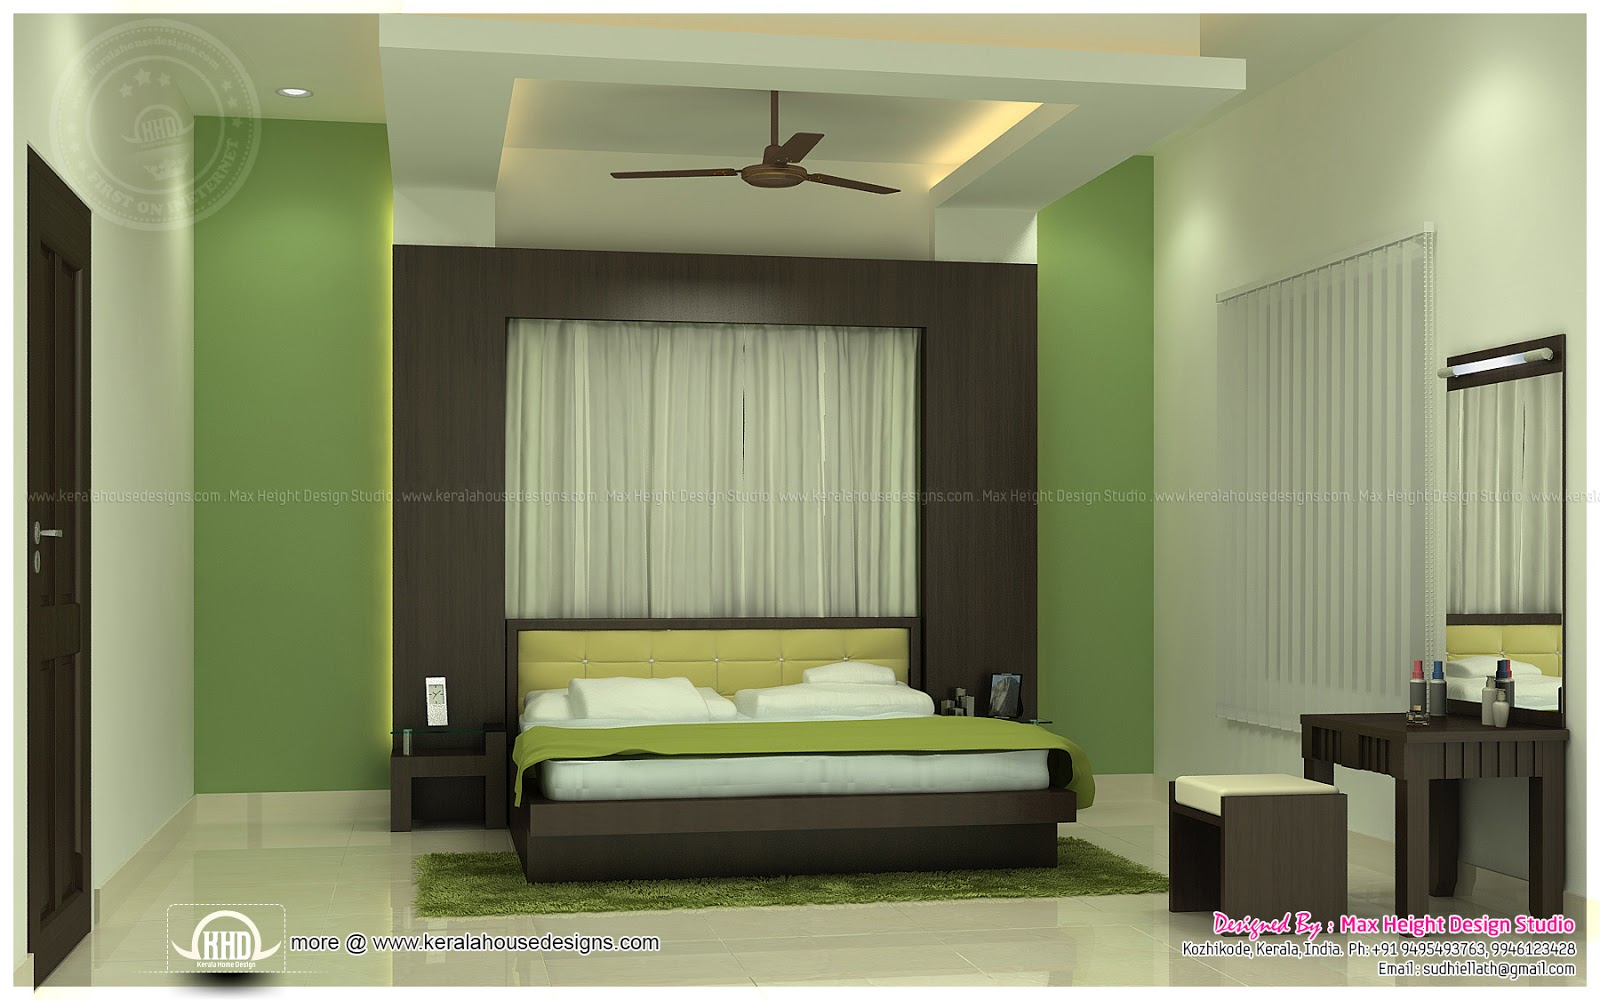 interior bedroom idea - 11+ Indian Small House Design 2 Bedroom Gif